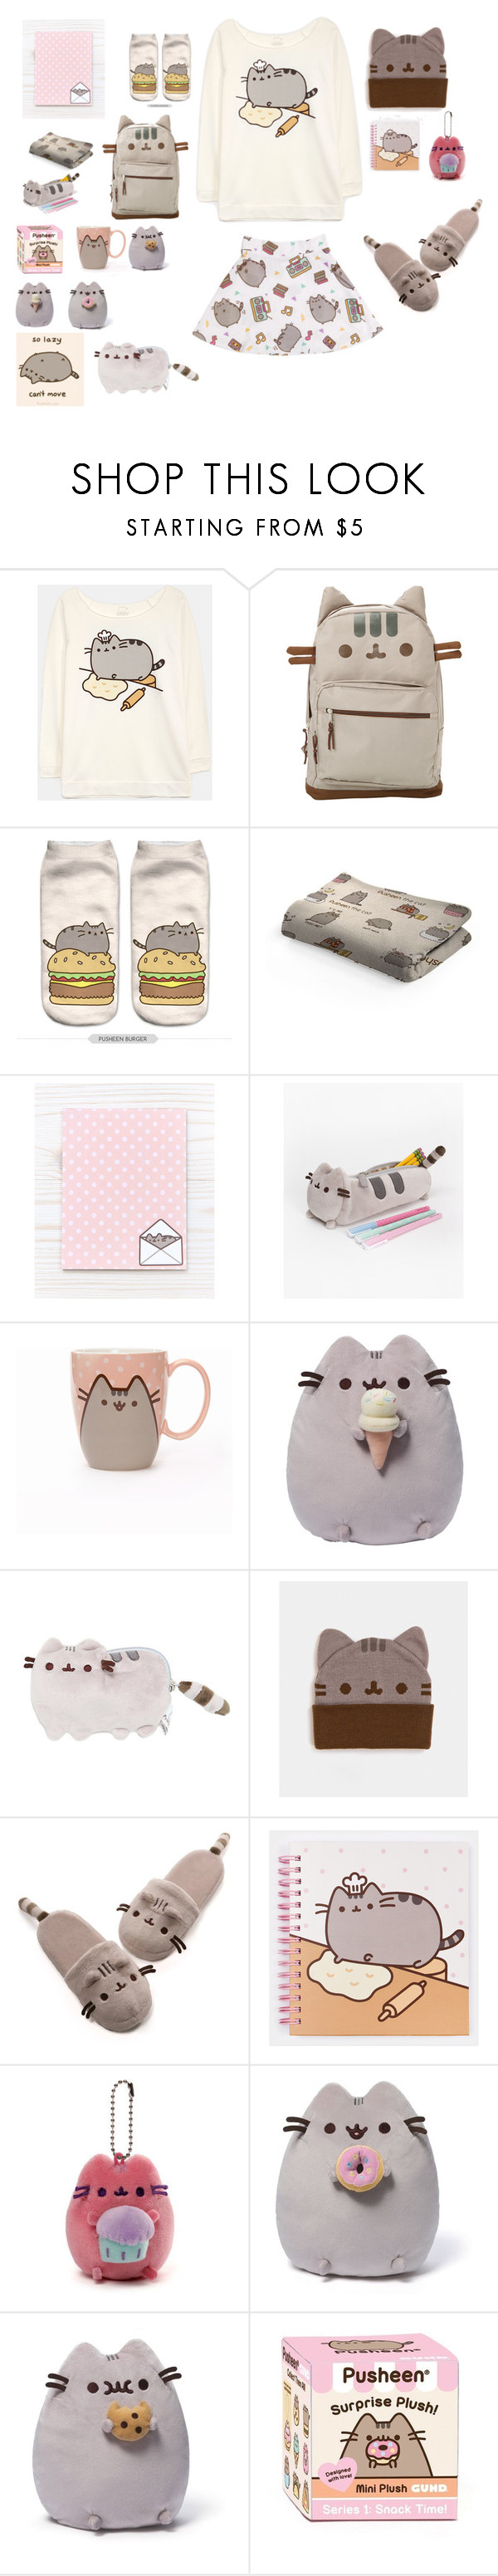 80 hair styles pusheen summerlife pusheens p ropa 4532 | 7ab980cce3e8d4532eb7a14b8a36f0e0